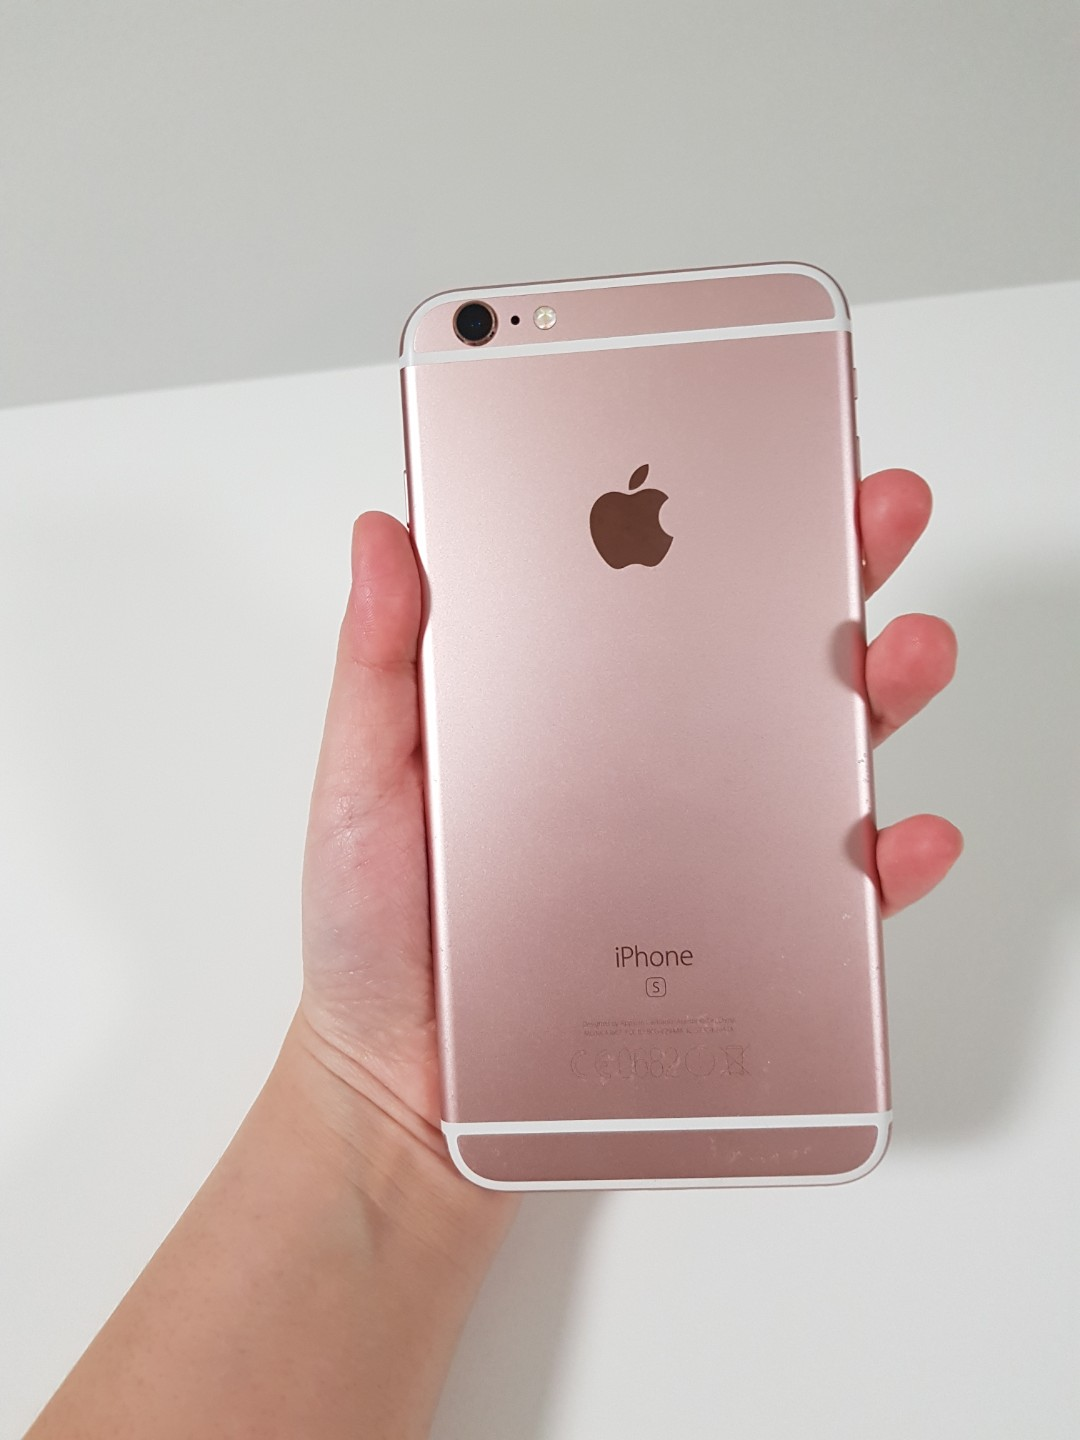 iphone 6s rose 16g usado